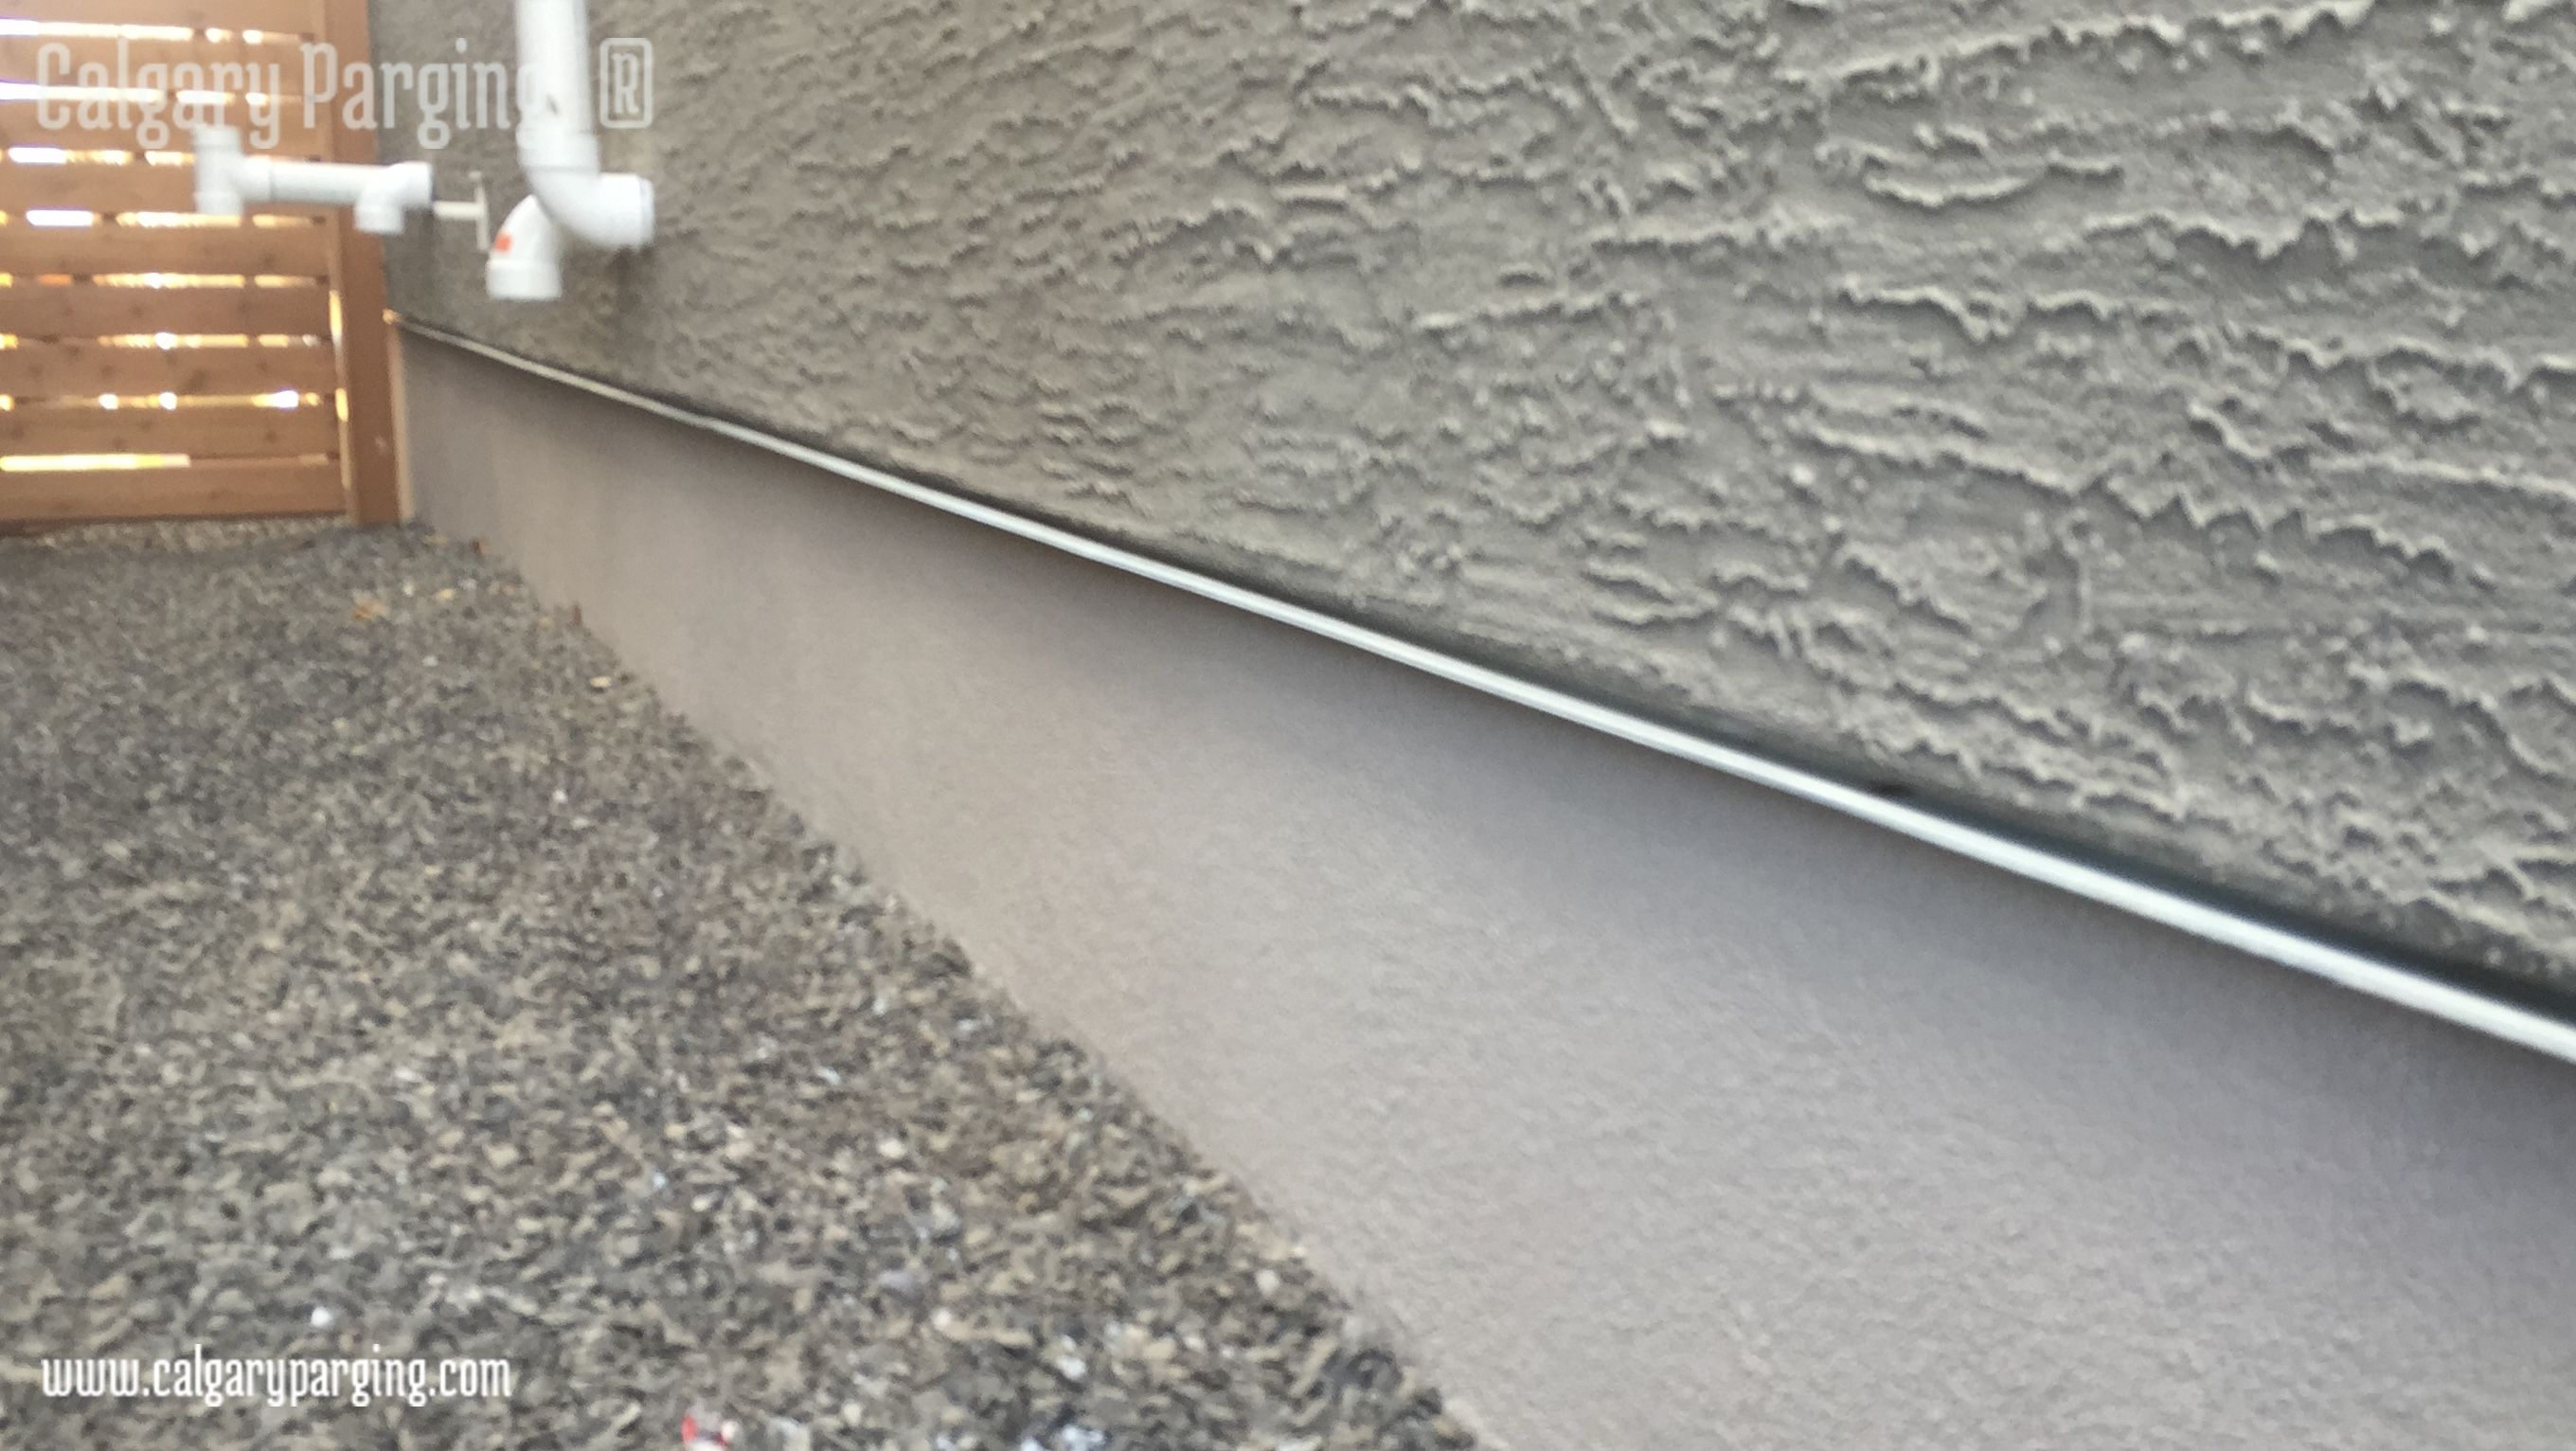 Parging with acrylic stucco finish smooth look flexible material parging with acrylic stucco finish smooth look flexible material washable and more durable solutioingenieria Images